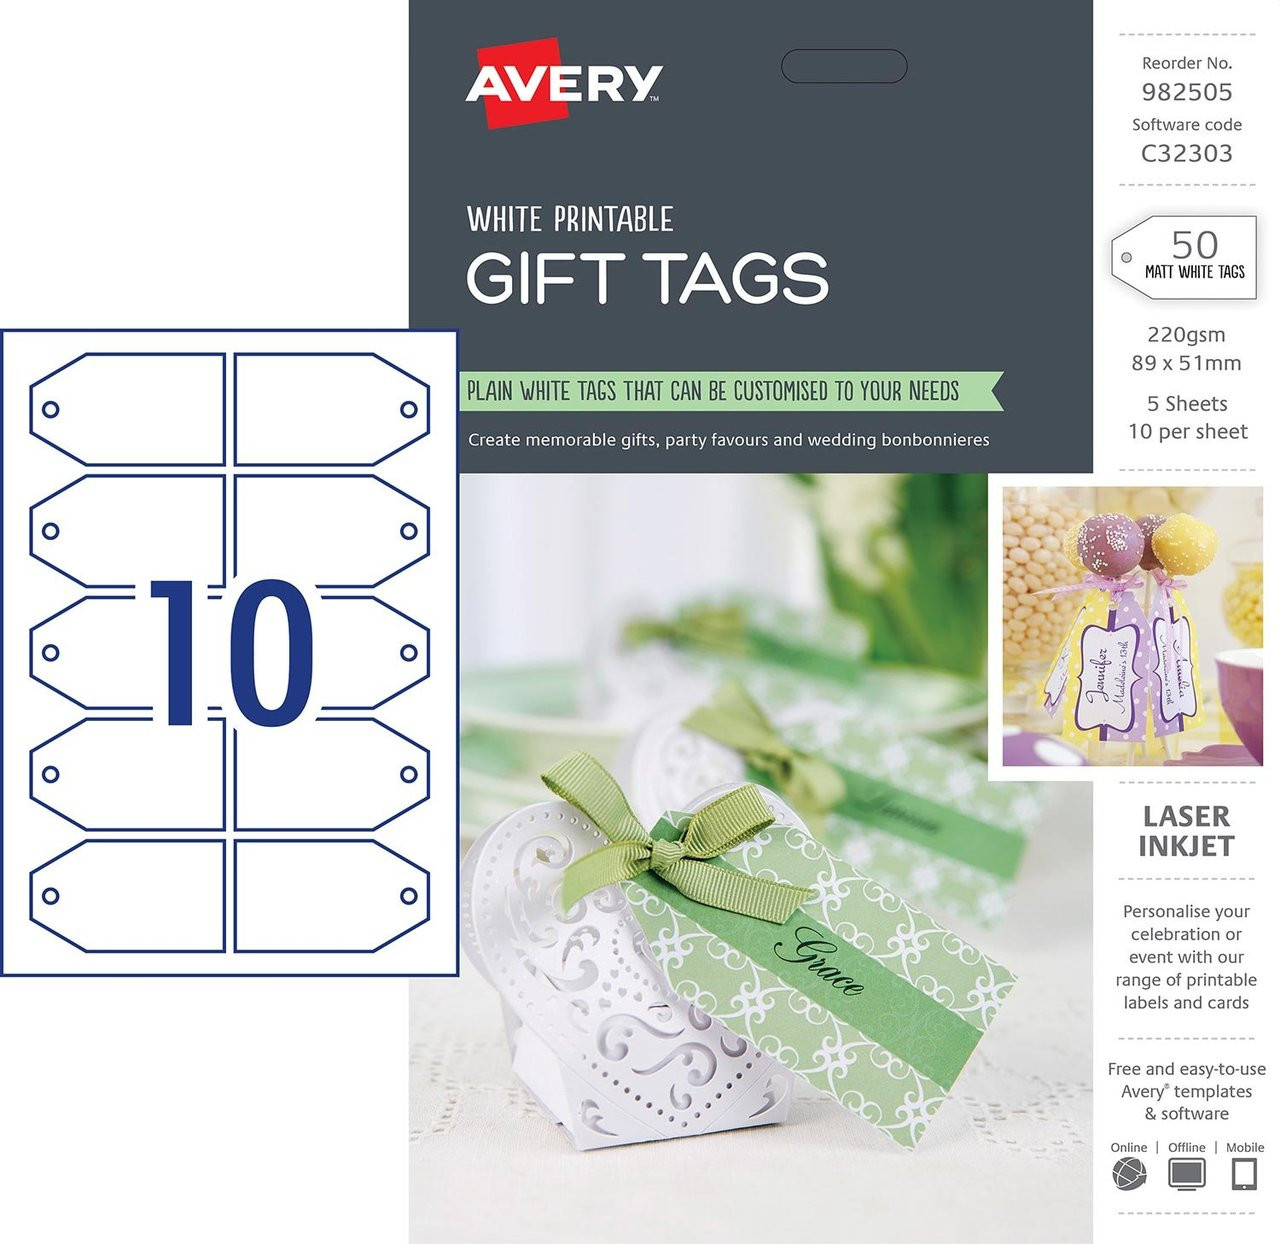 image regarding Avery Printable Tags named AVERY 982505 Reward TAGS, C32303, 50/PACK, 89 X 51MM 10UP